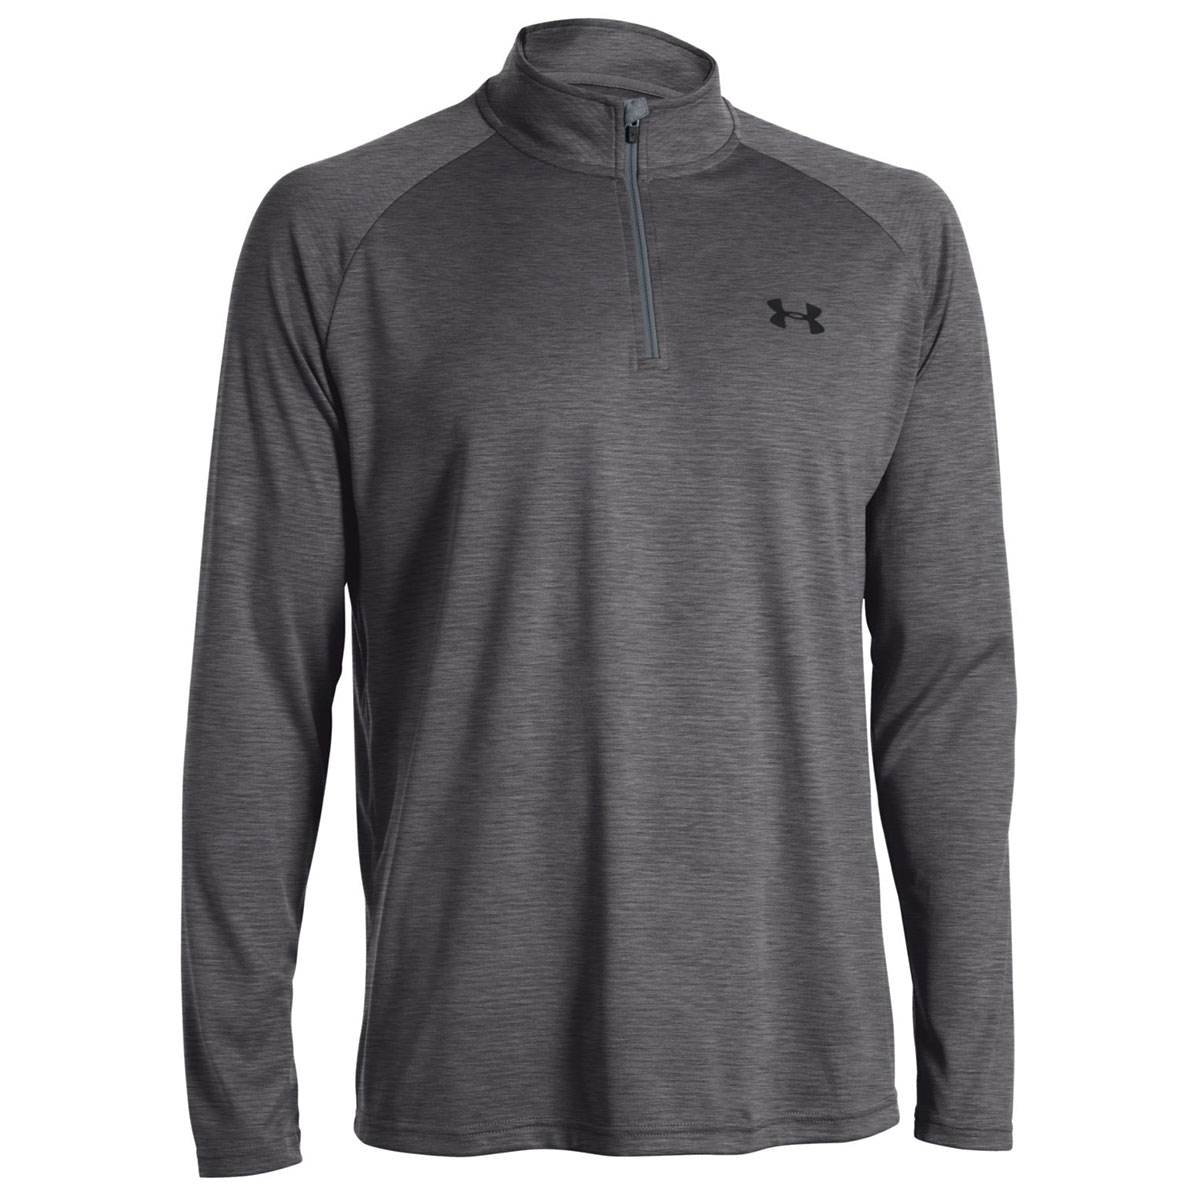 Under-Armour-Mens-UA-Tech-1-4-Zip-Long-Sleeve-Top-Workout-Layer-27-OFF-RRP thumbnail 42